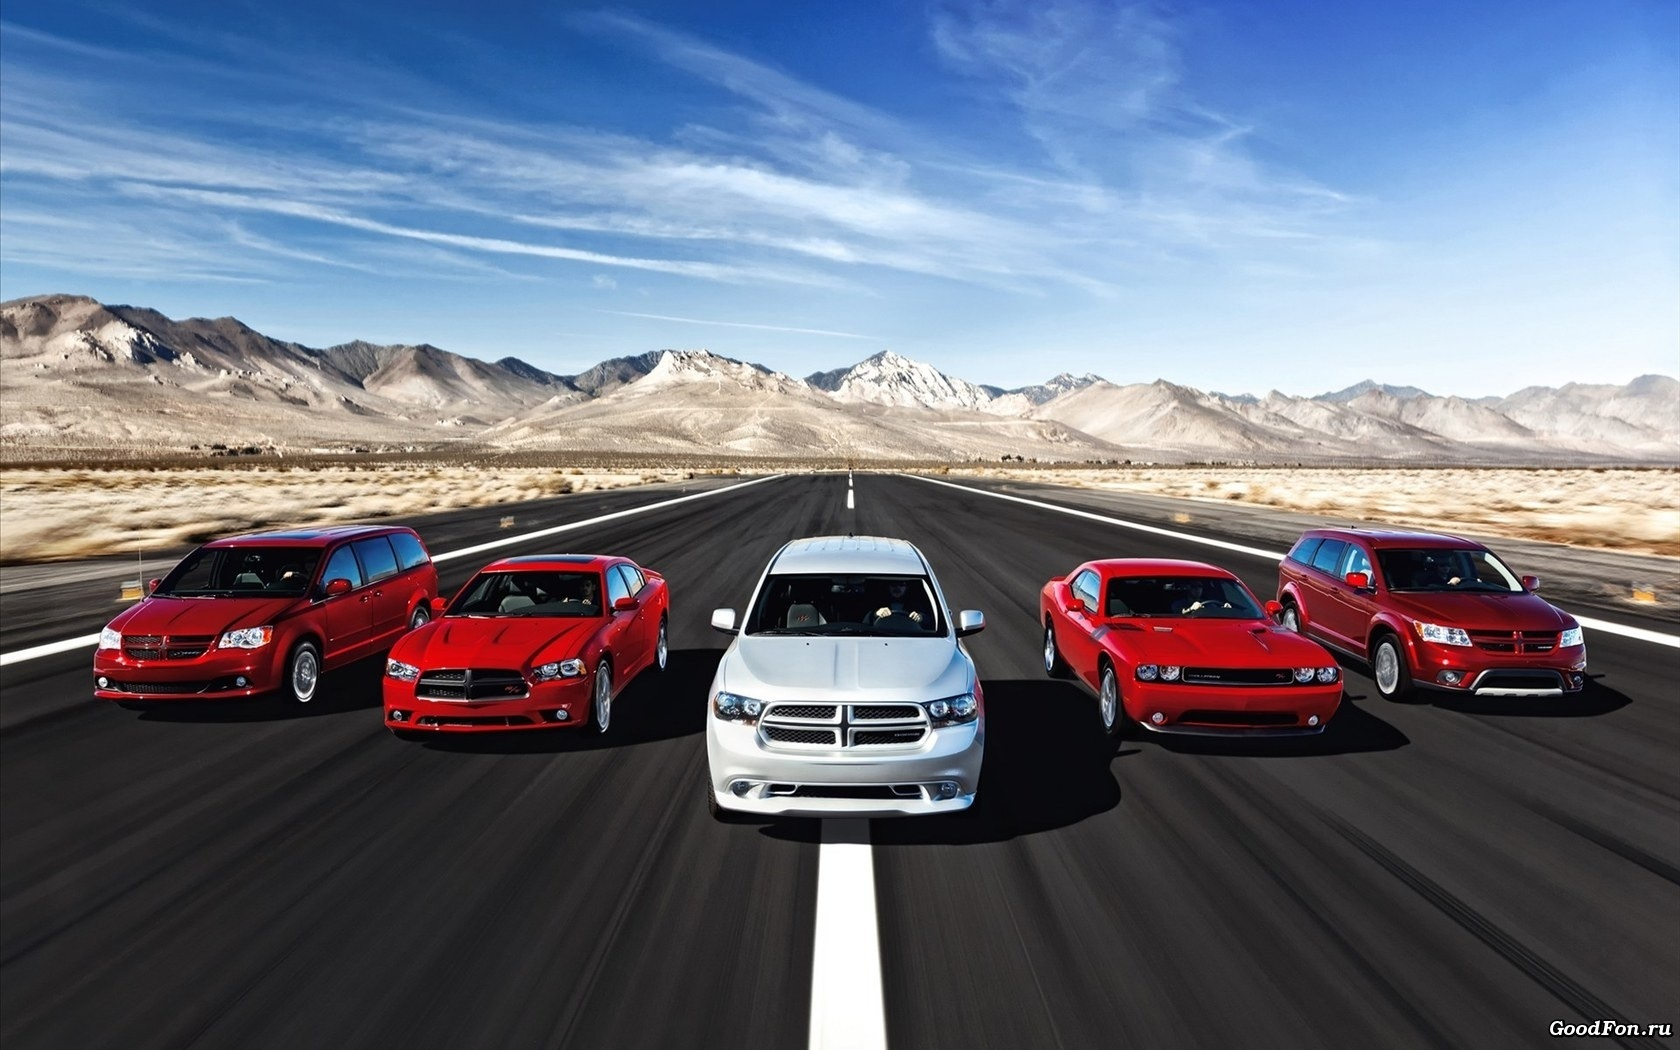 Wallpaper dodge charger srt 2012 1680x1050 hd picture image - Charger srt wallpaper ...